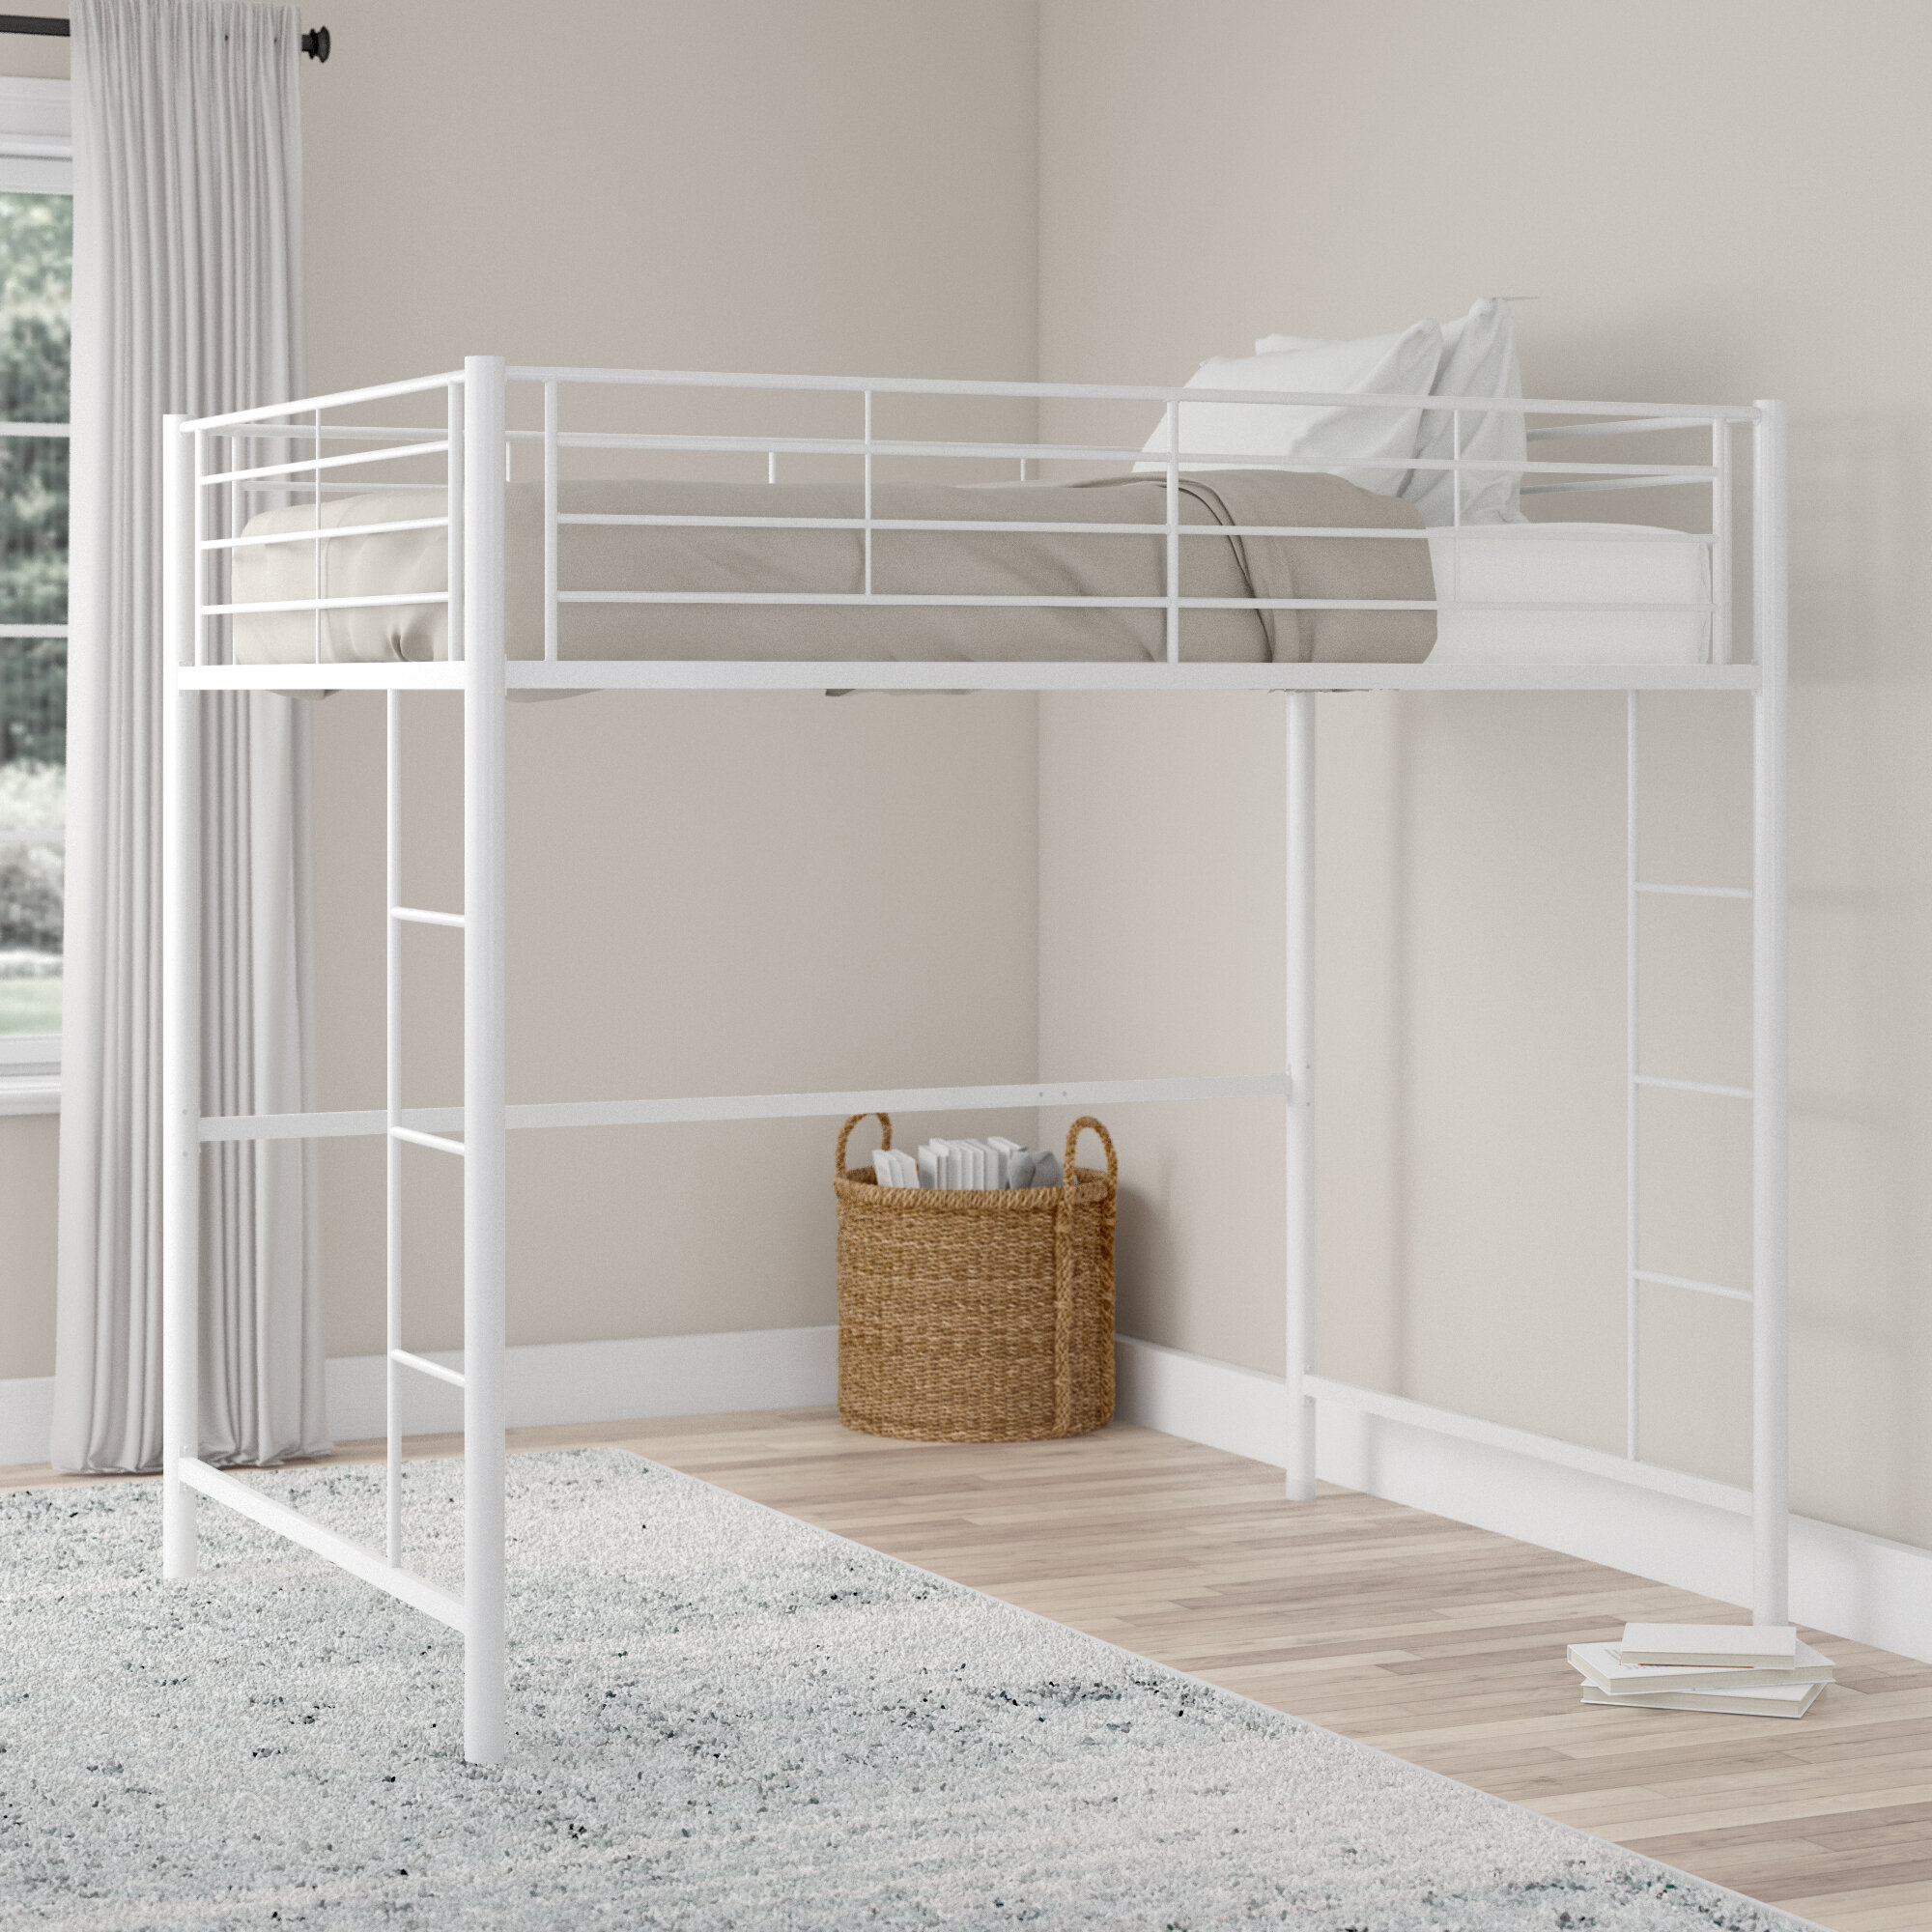 Advantages And Drawbacks Of Strong Wooden Loft Bed With Stairs Viv + Rae Maurice Full Bed u0026 Reviews | Wayfair